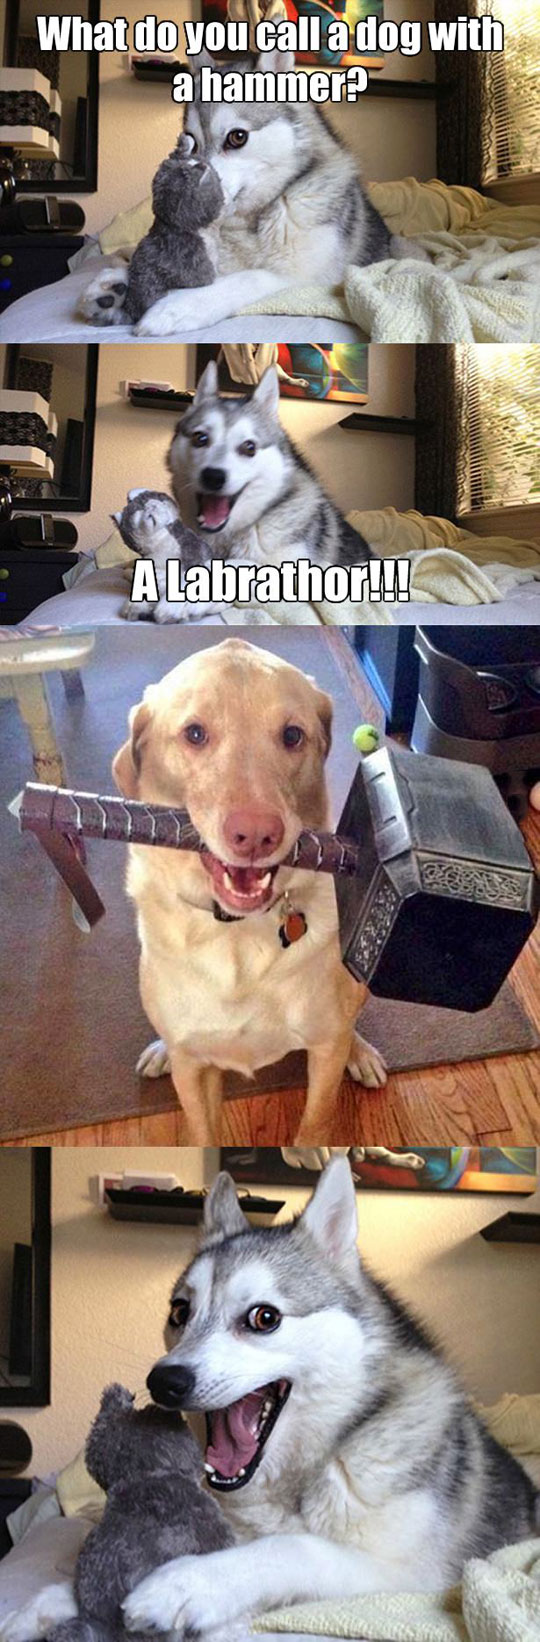 Dog With A Hammer